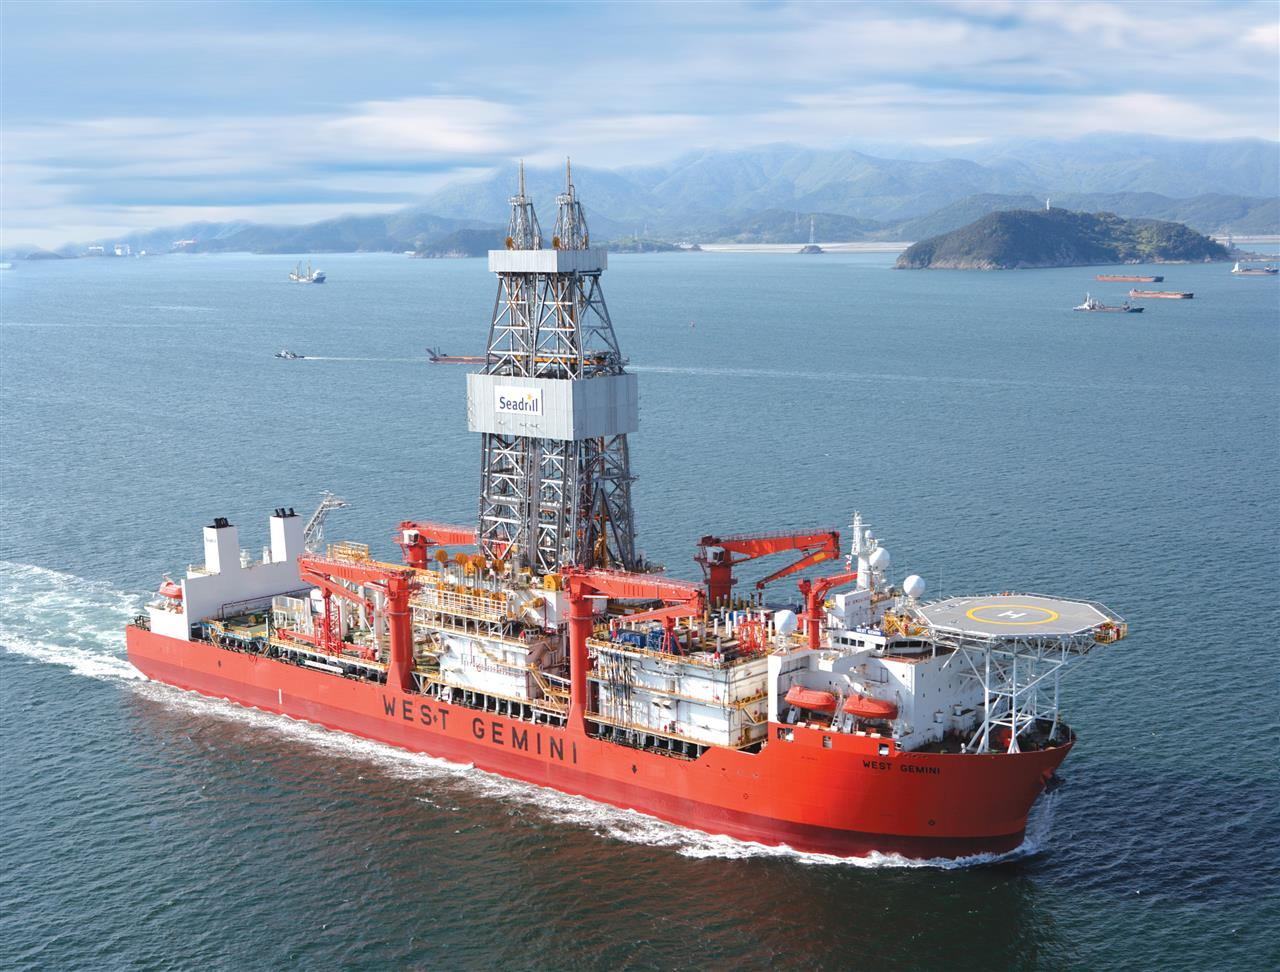 seadrill offshore rig